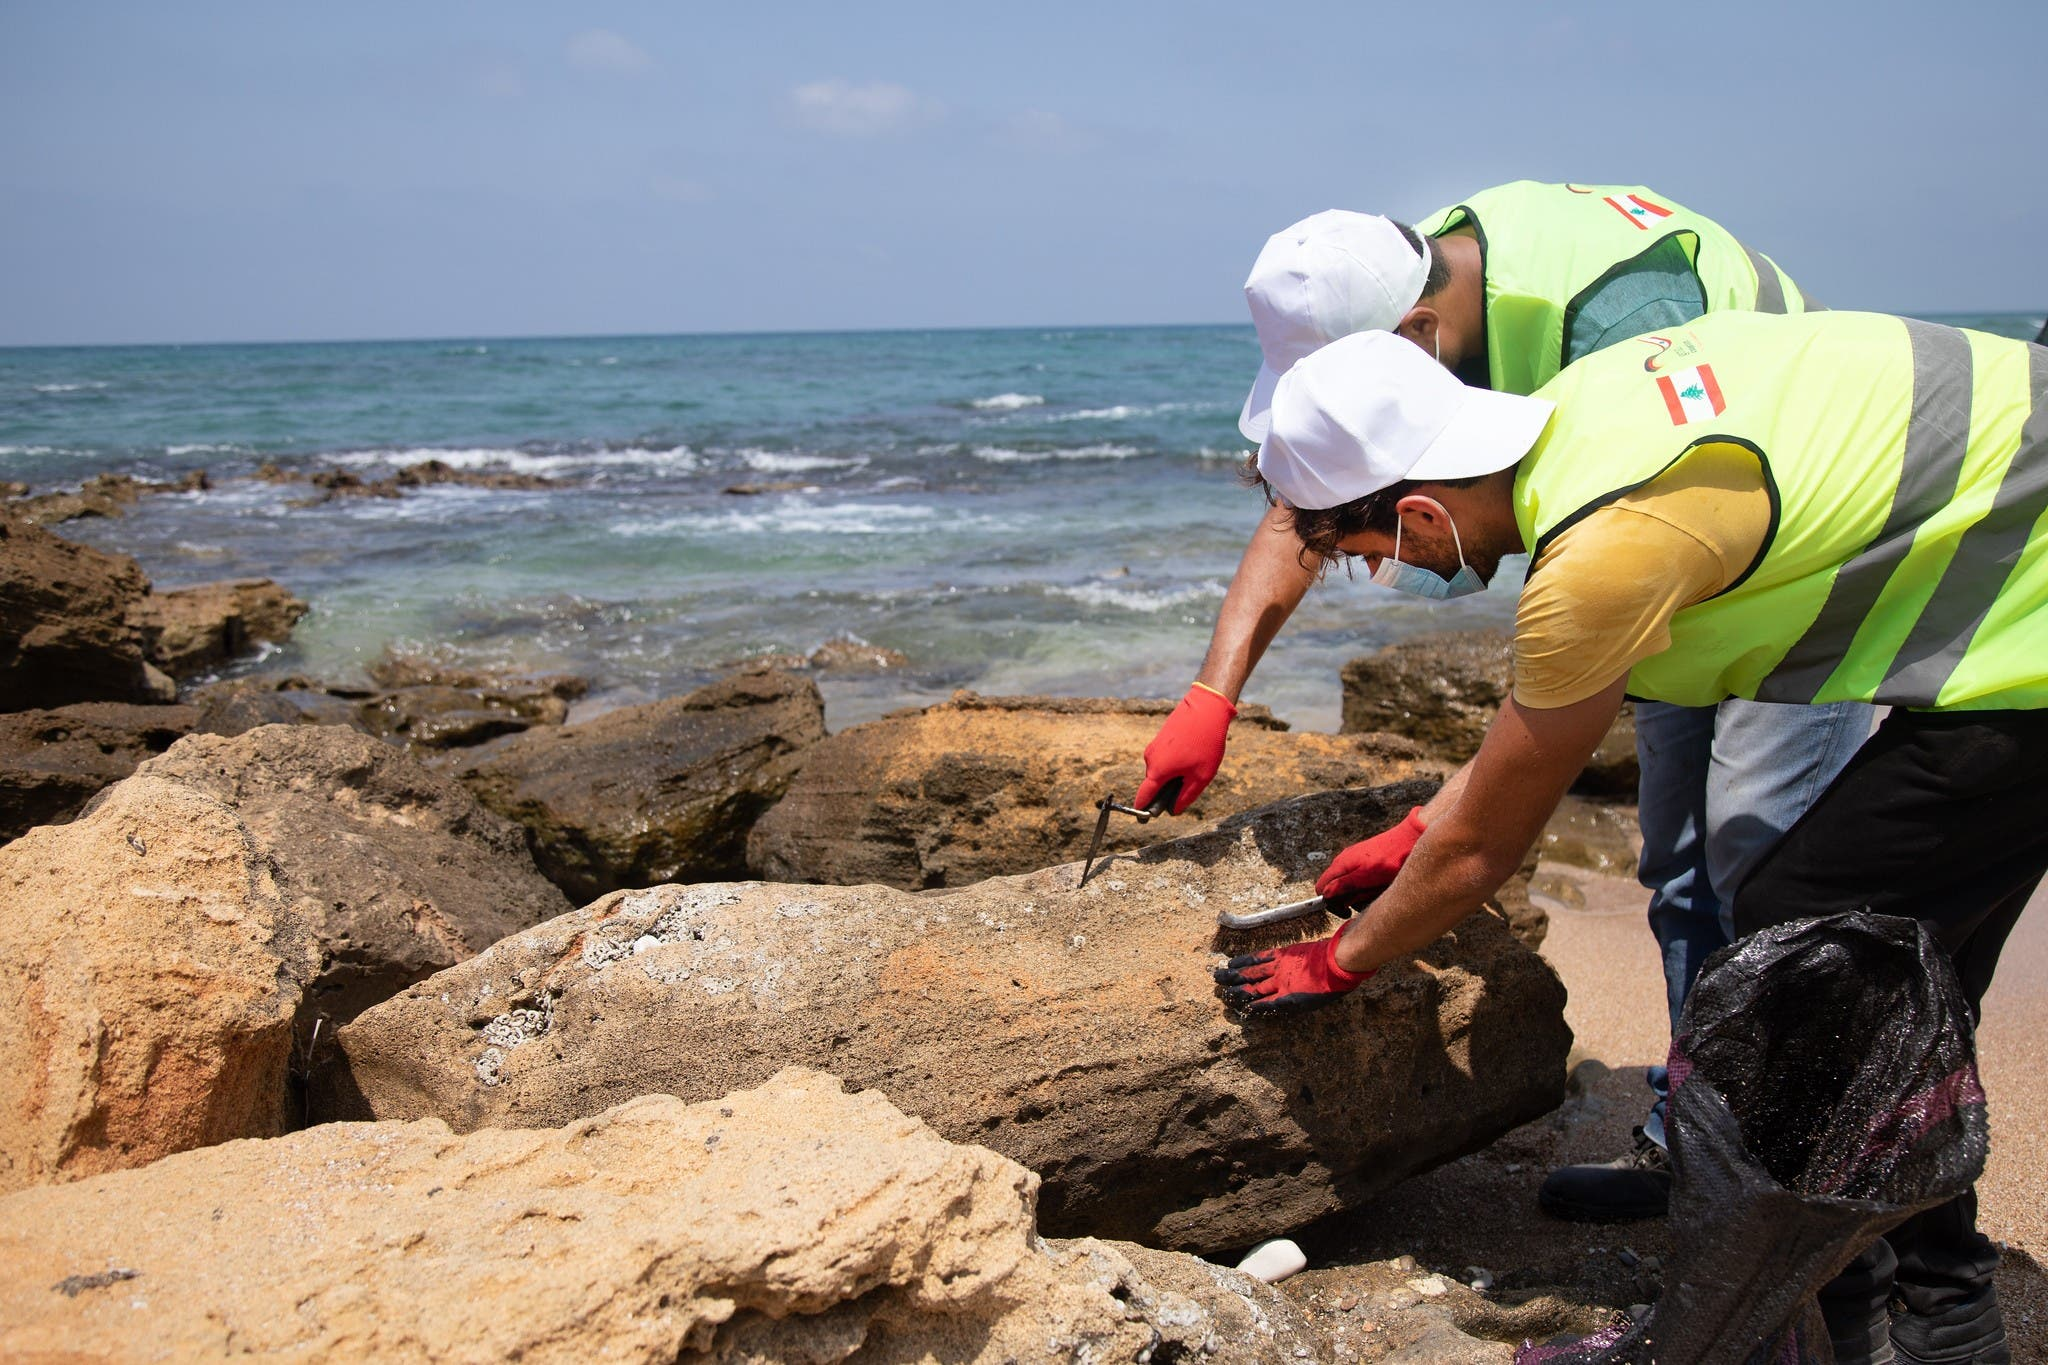 The weather and the time of day affect the difficulty of the cleanup, with higher temperatures causing oil residues to become more fluid and sticky, making them tougher to clean off hard surfaces like rocks. (Image: UNDP)